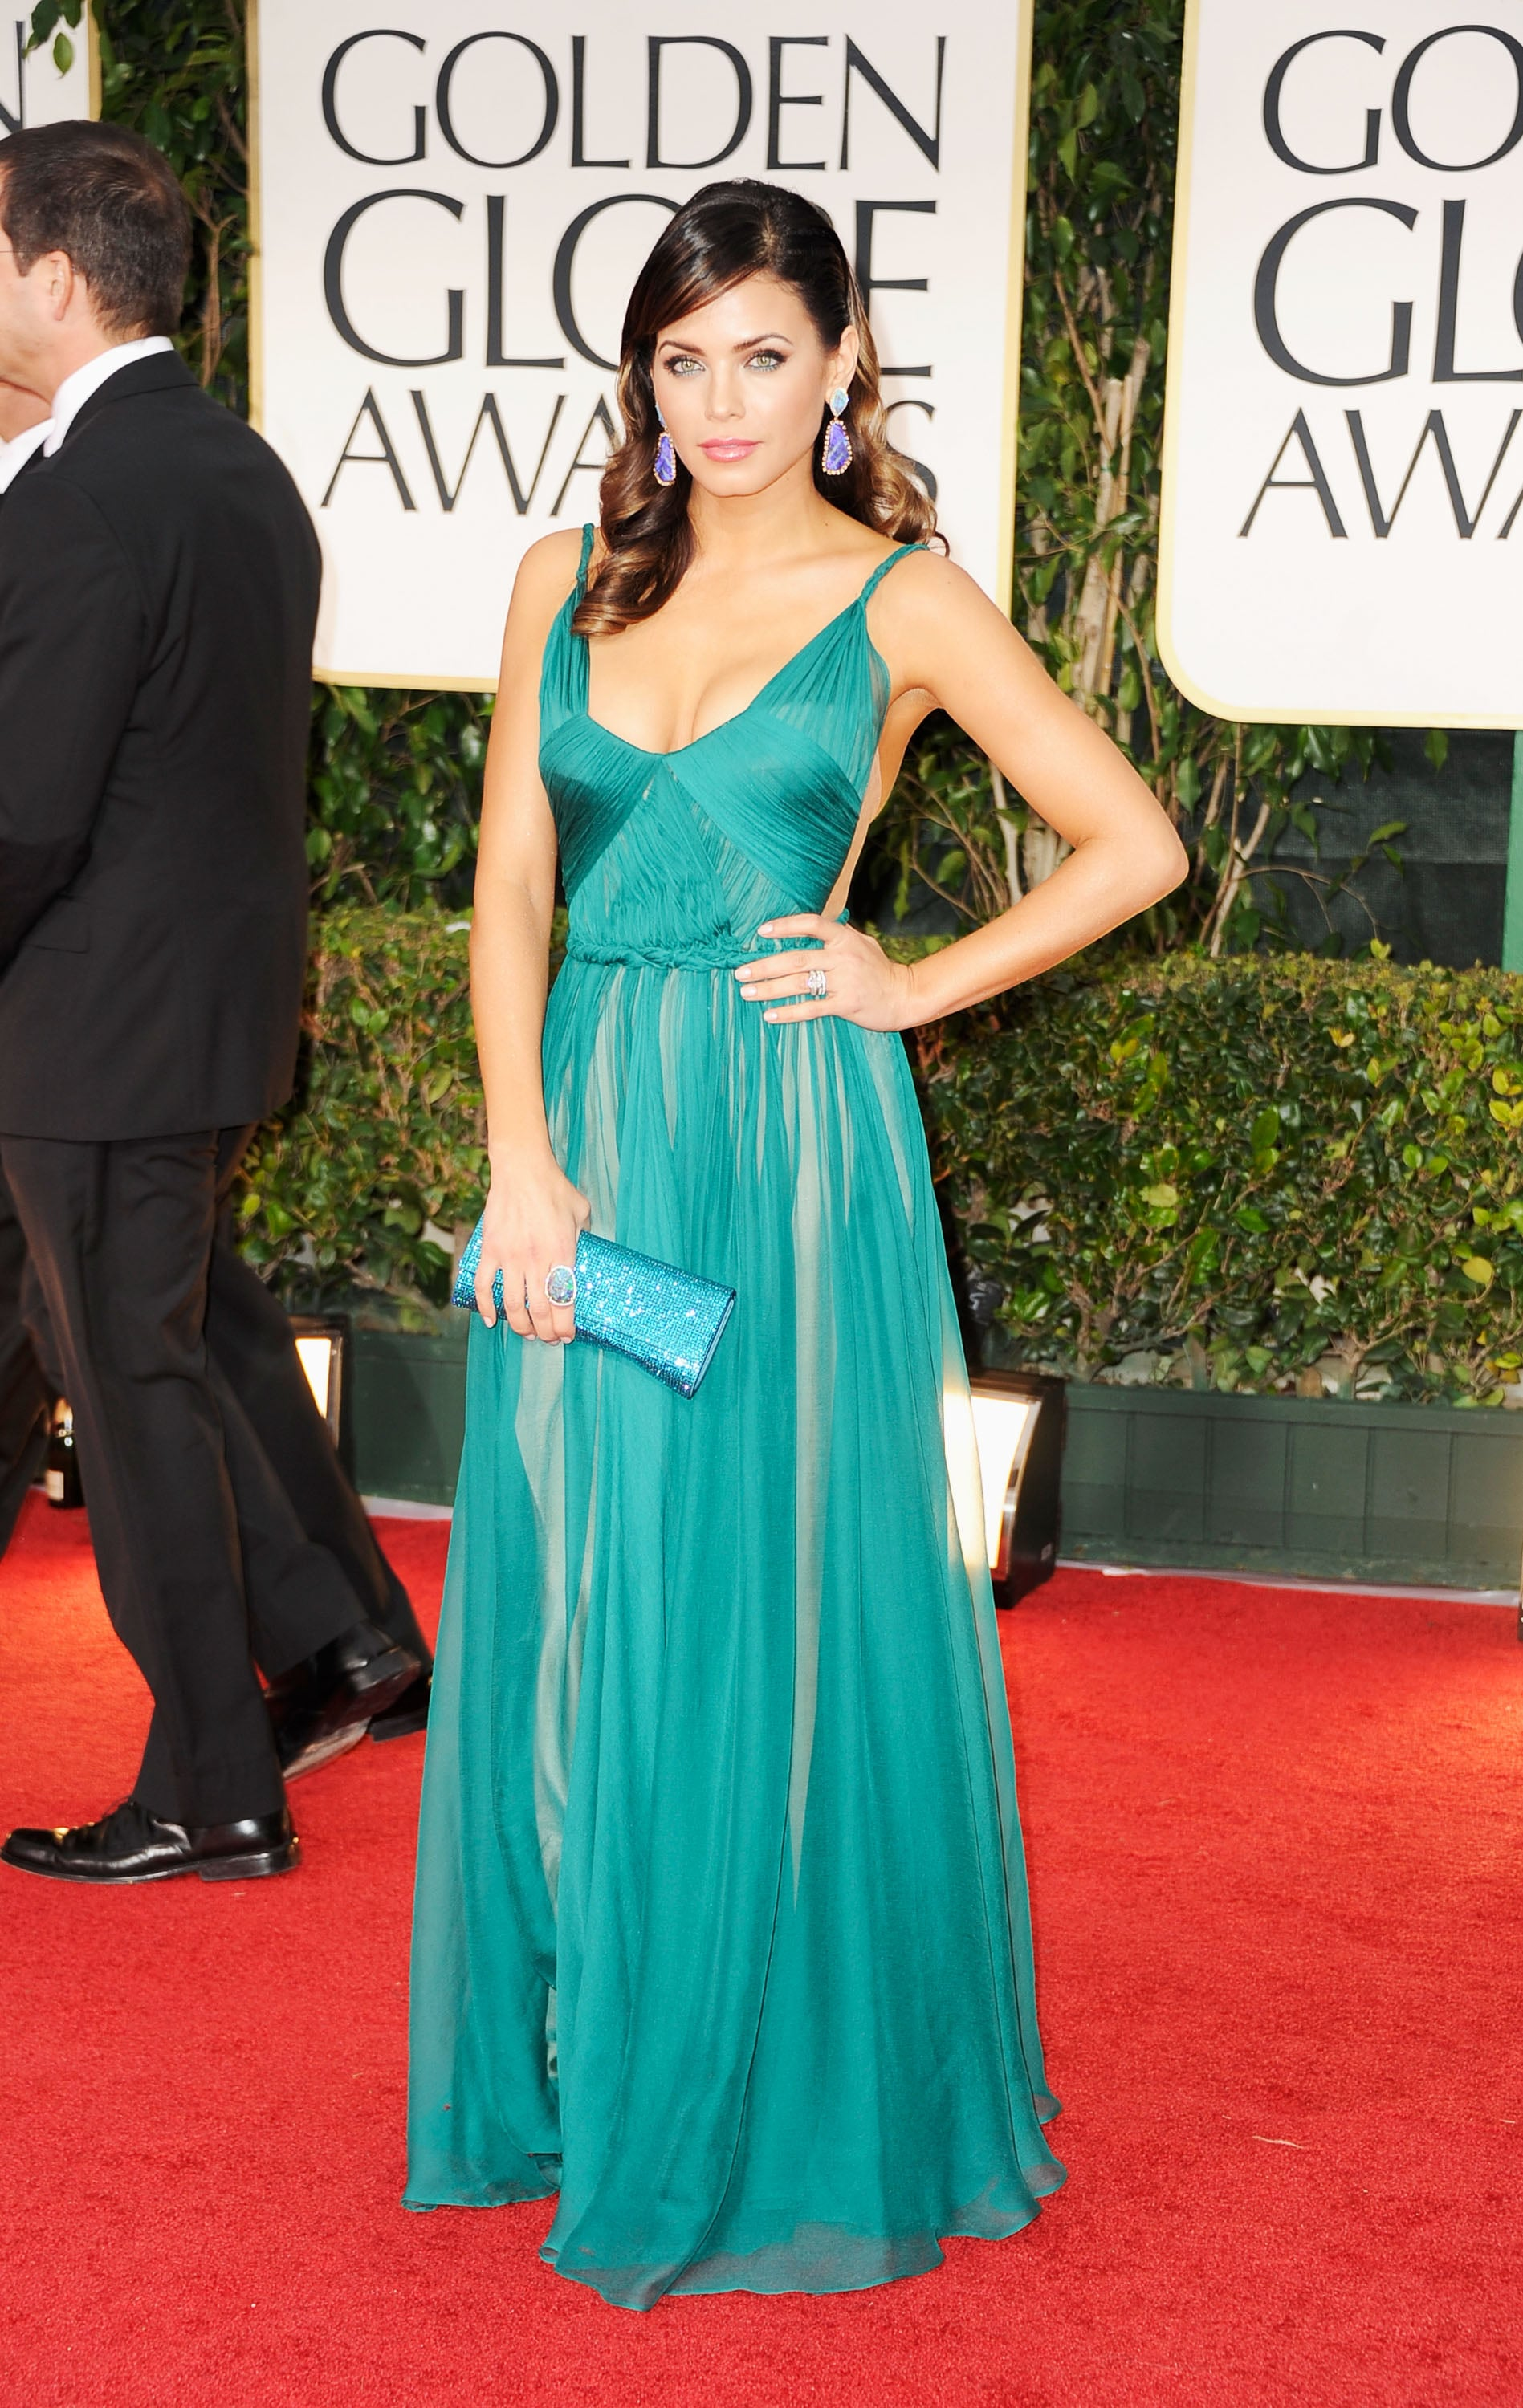 Jenna Dewan in Maria Lucia Hohan at the Golden Globes.